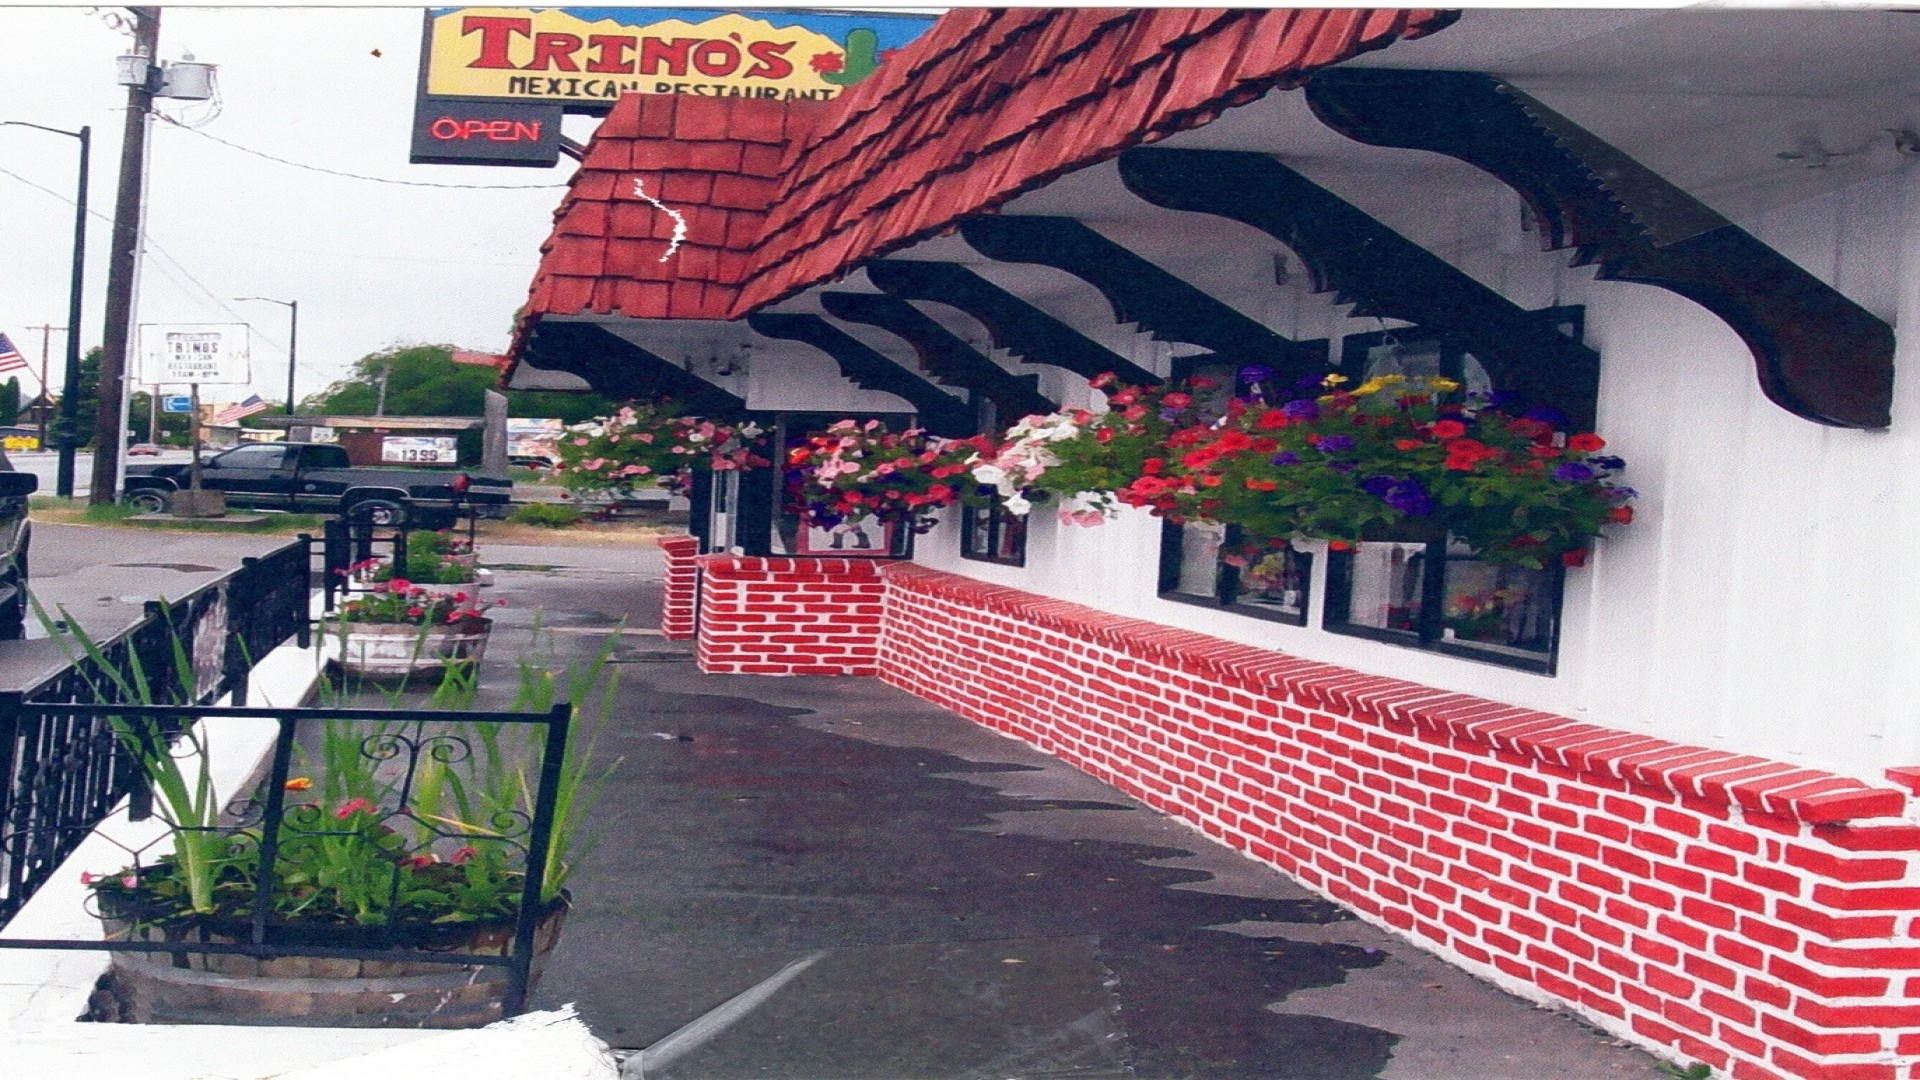 Trino's Mexican Restaurant